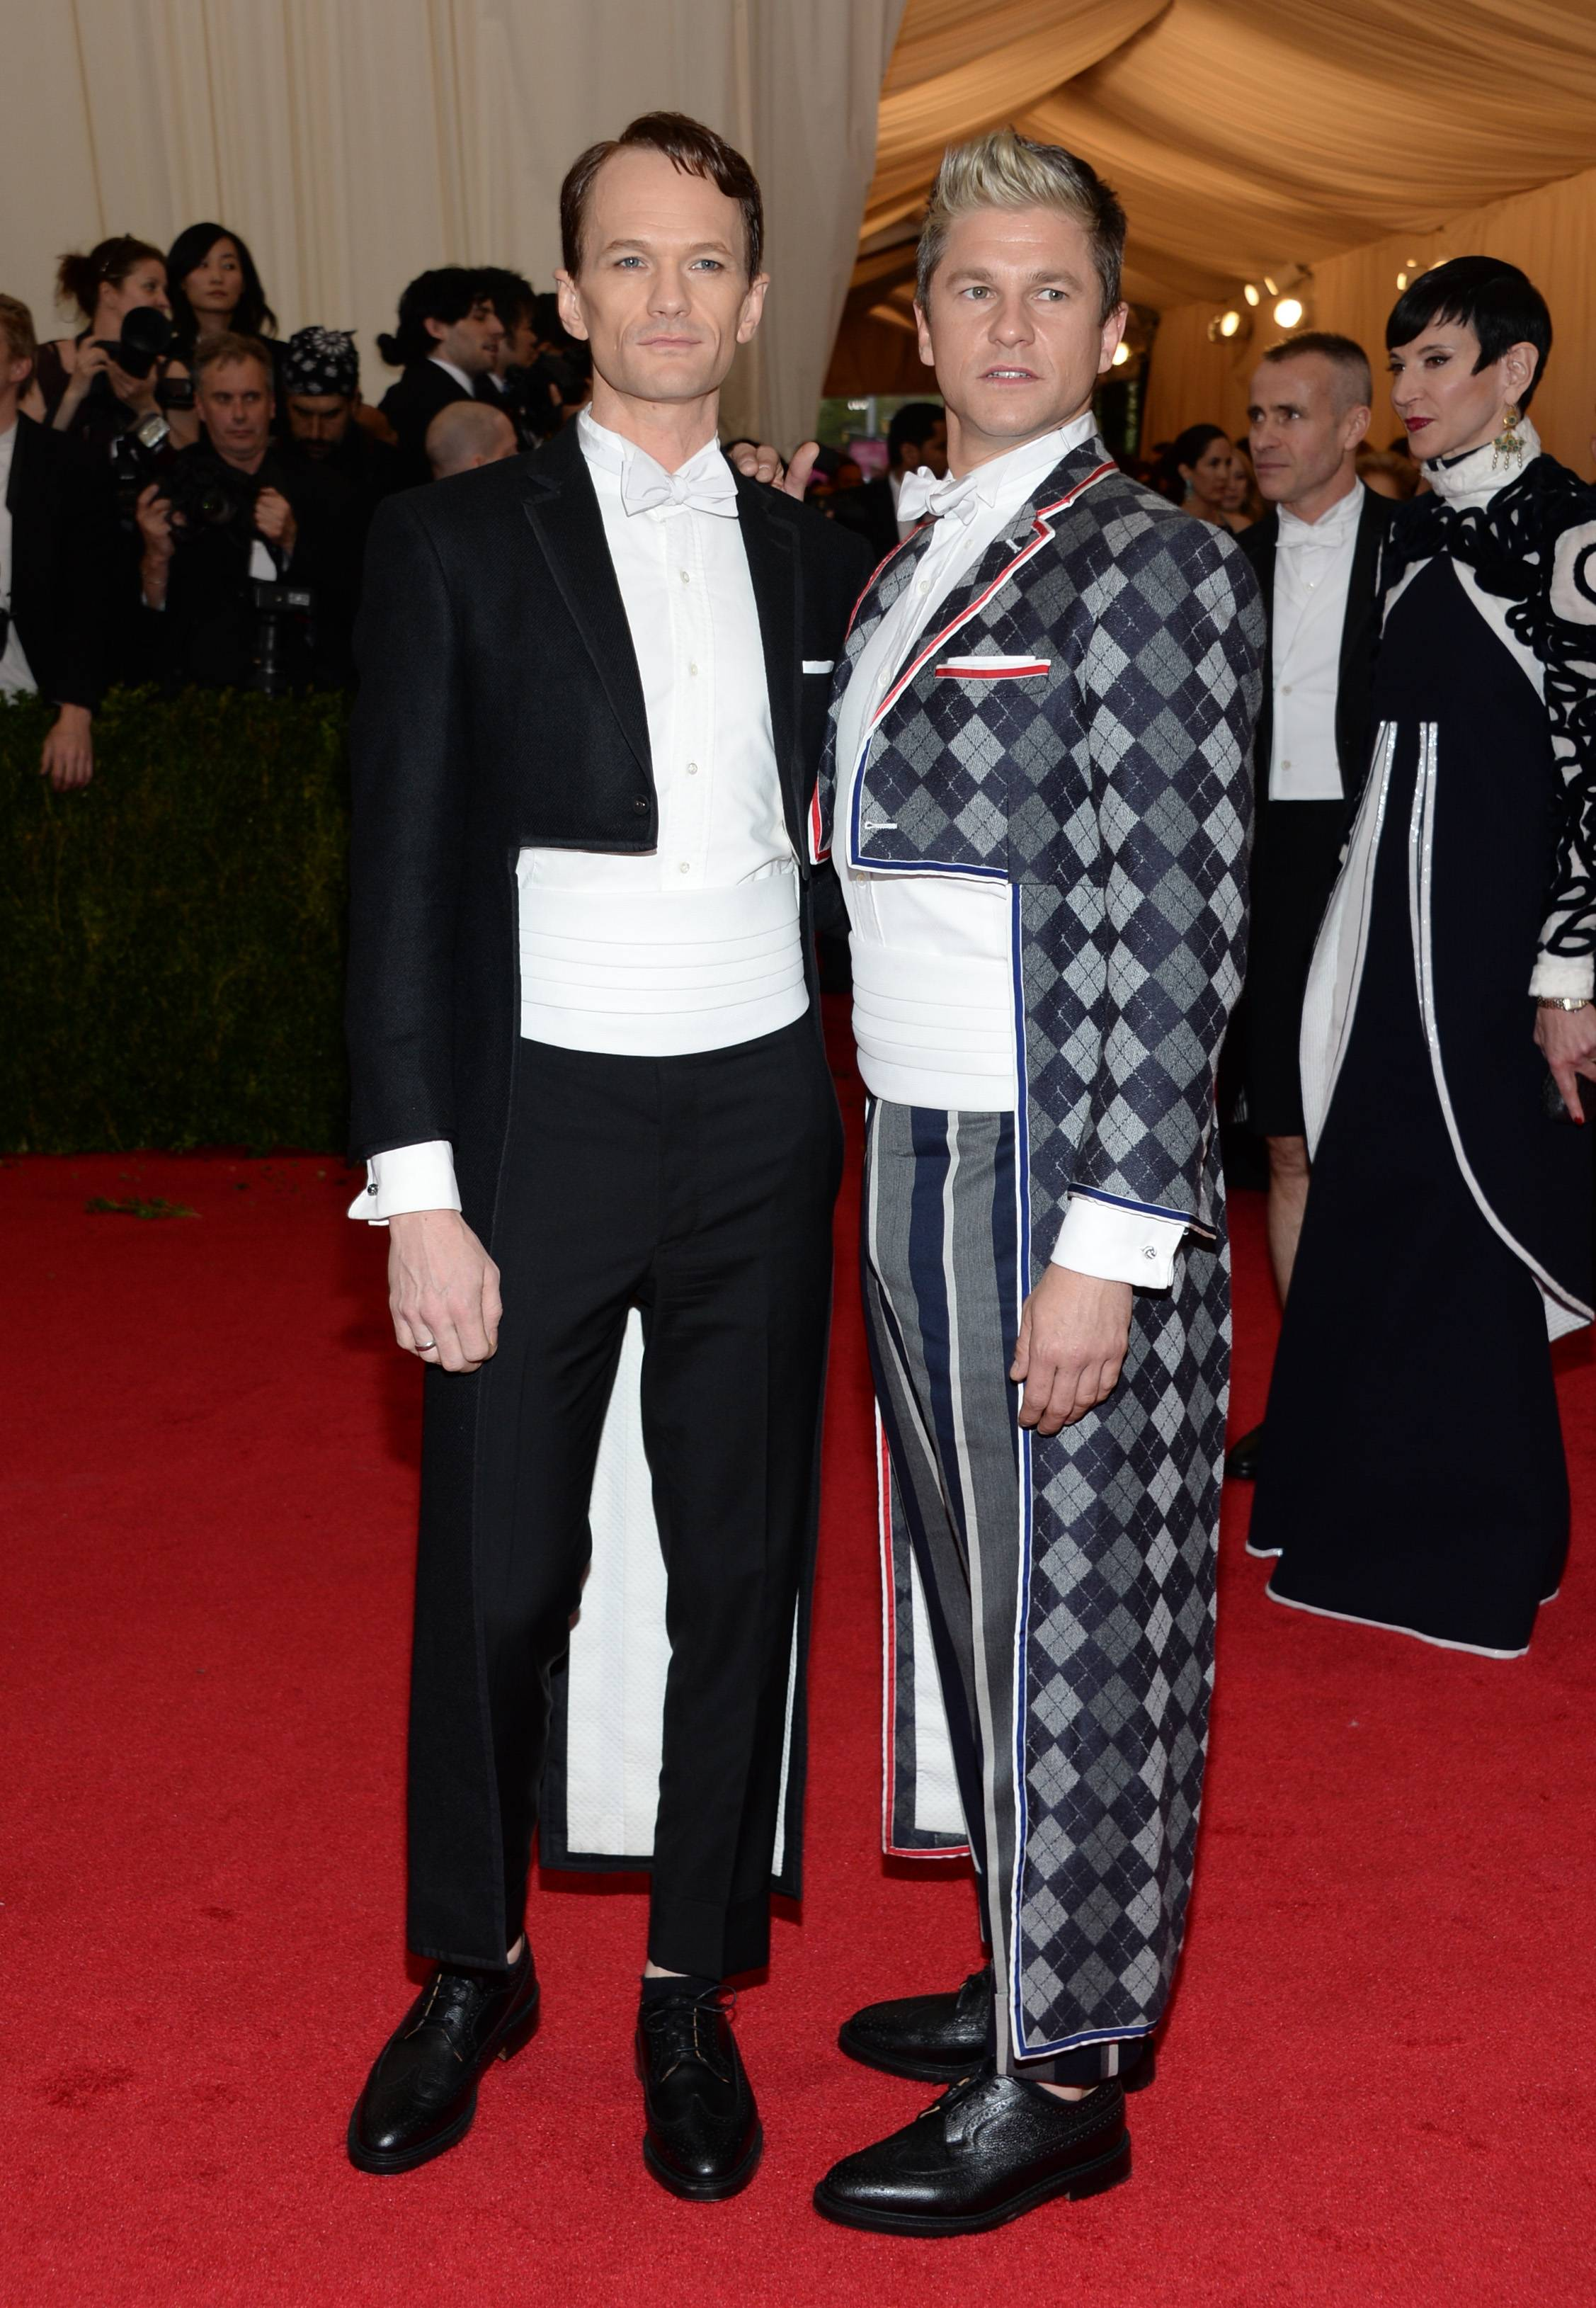 Neil Patrick Harris, left, and David Burtka attend The Metropolitan Museum of Art's Costume Institute benefit gala Monday.